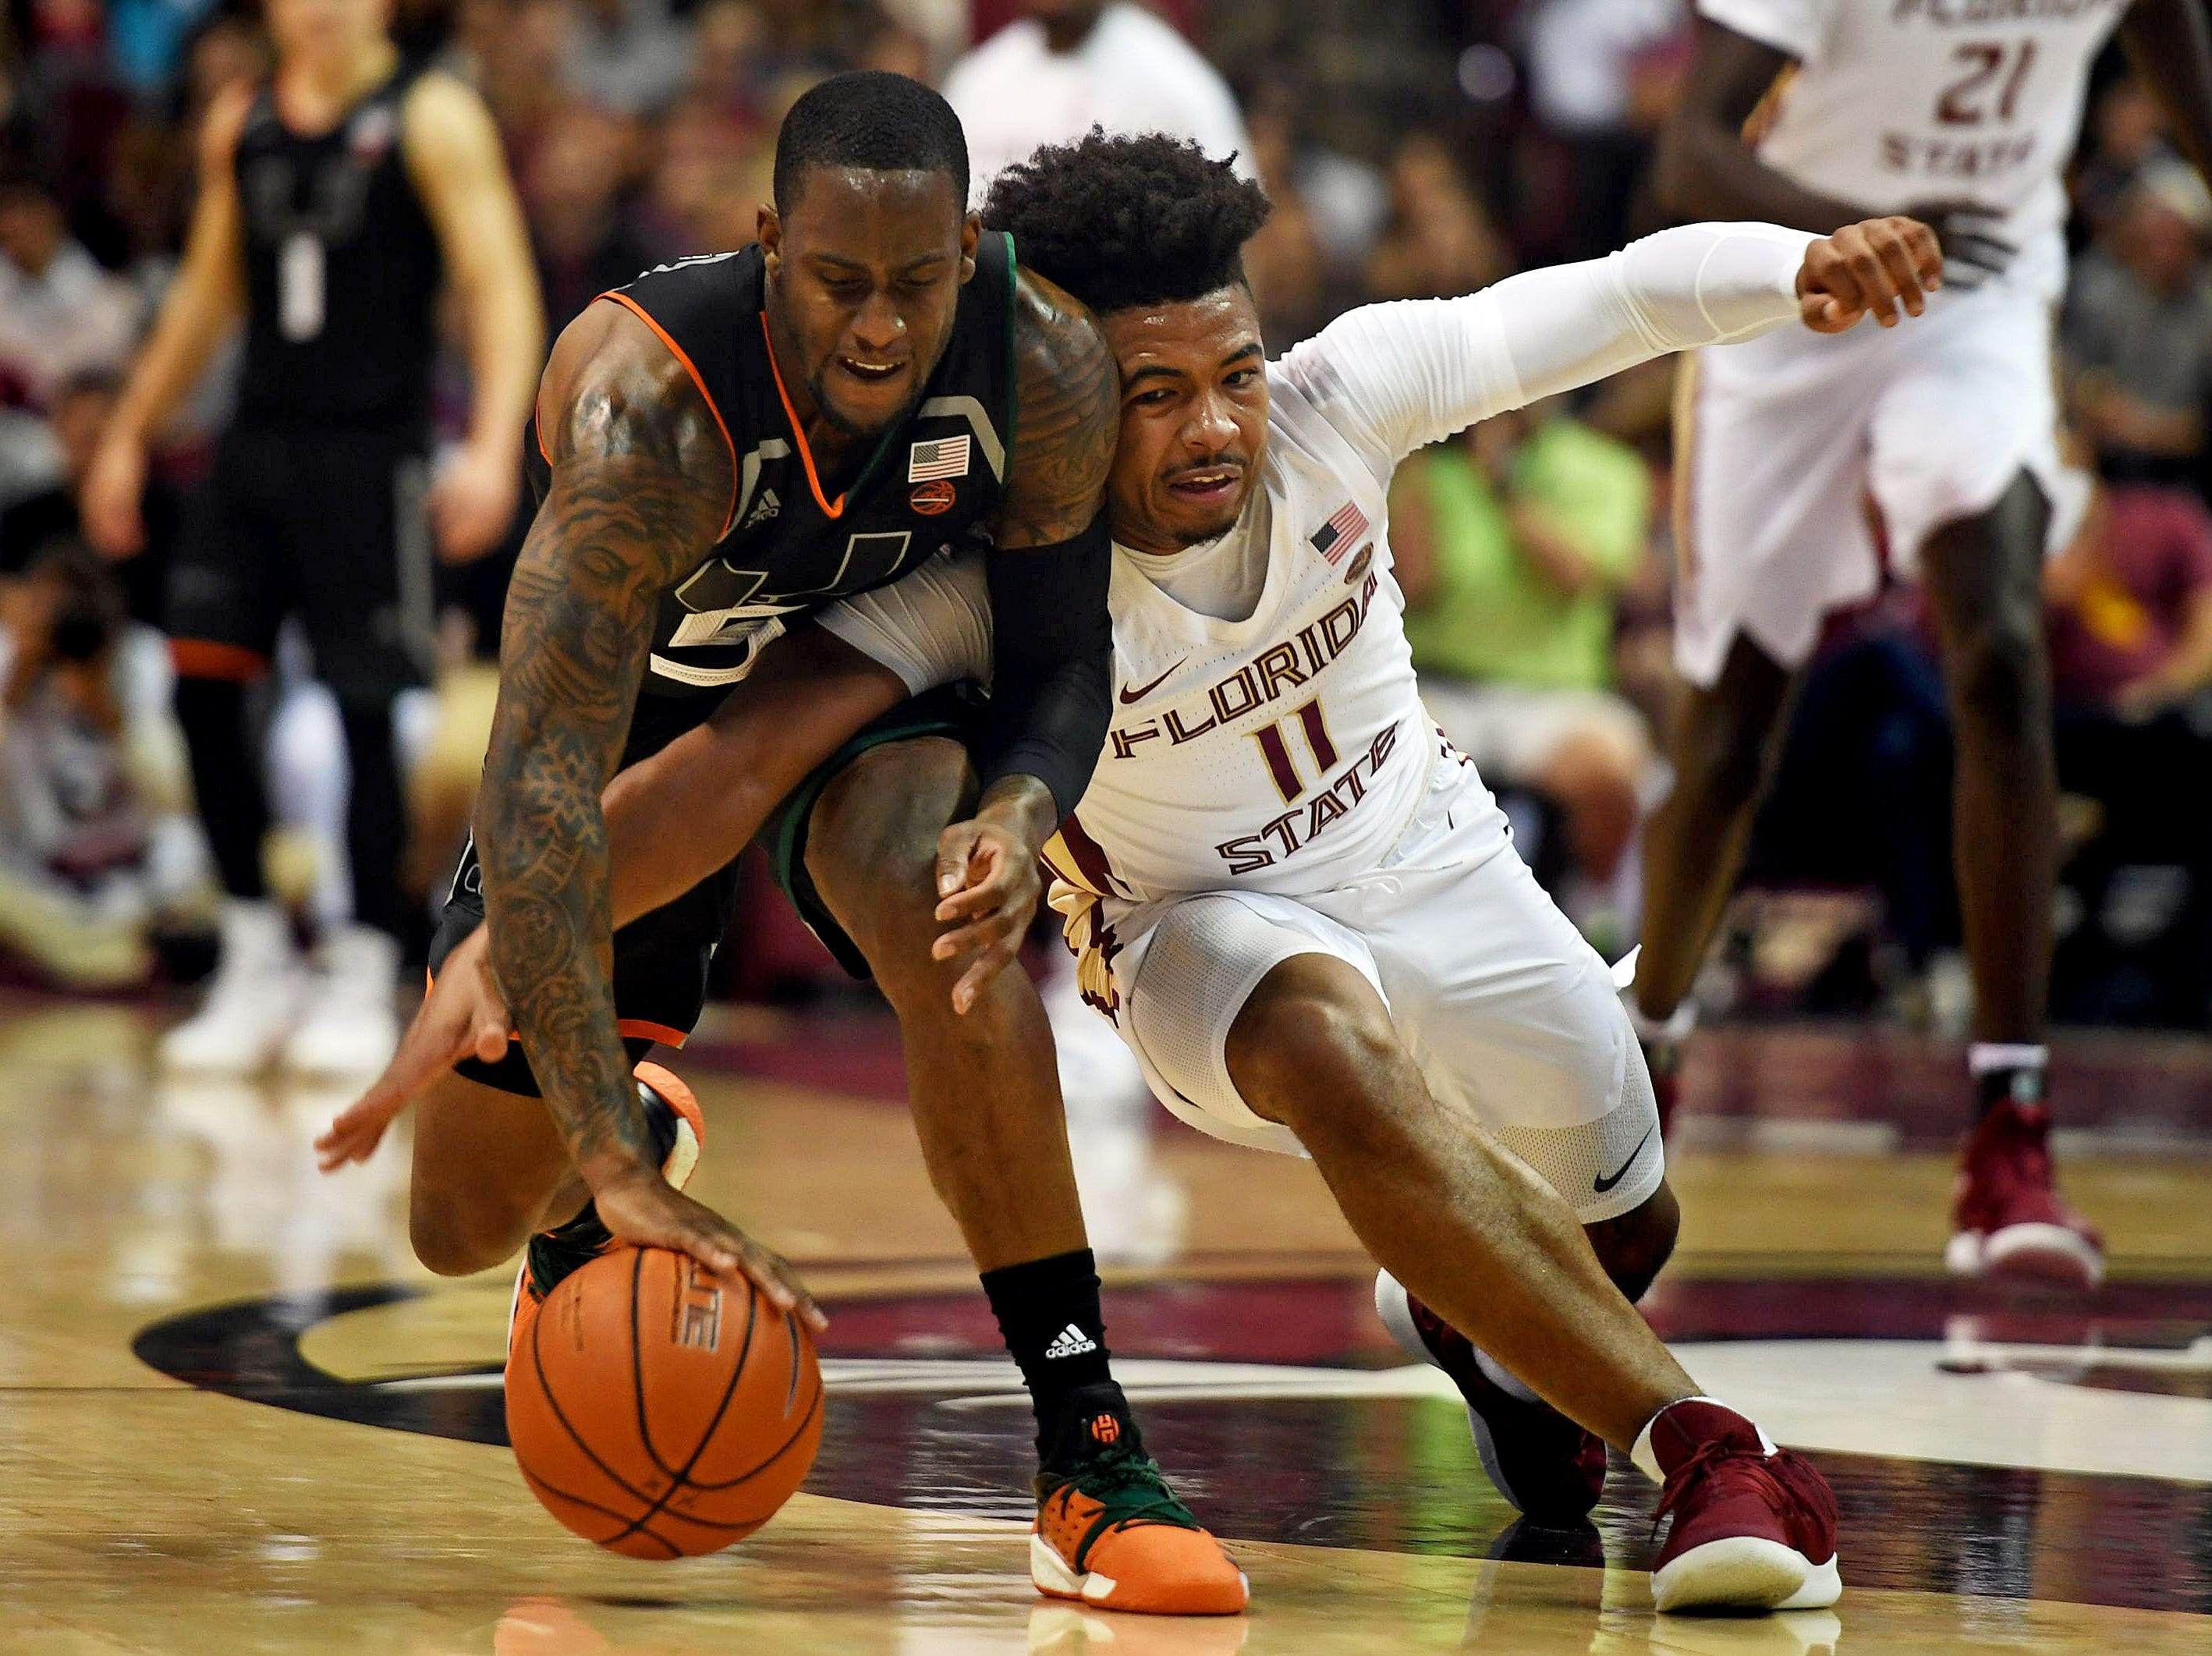 Jan 9, 2019; Tallahassee, FL, USA; Florida State Seminoles guard David Nichols (11) fights for a loose ball against Miami Hurricanes guard Zach Johnson (5) during the first half at Donald L. Tucker Center. Mandatory Credit: Melina Myers-USA TODAY Sports